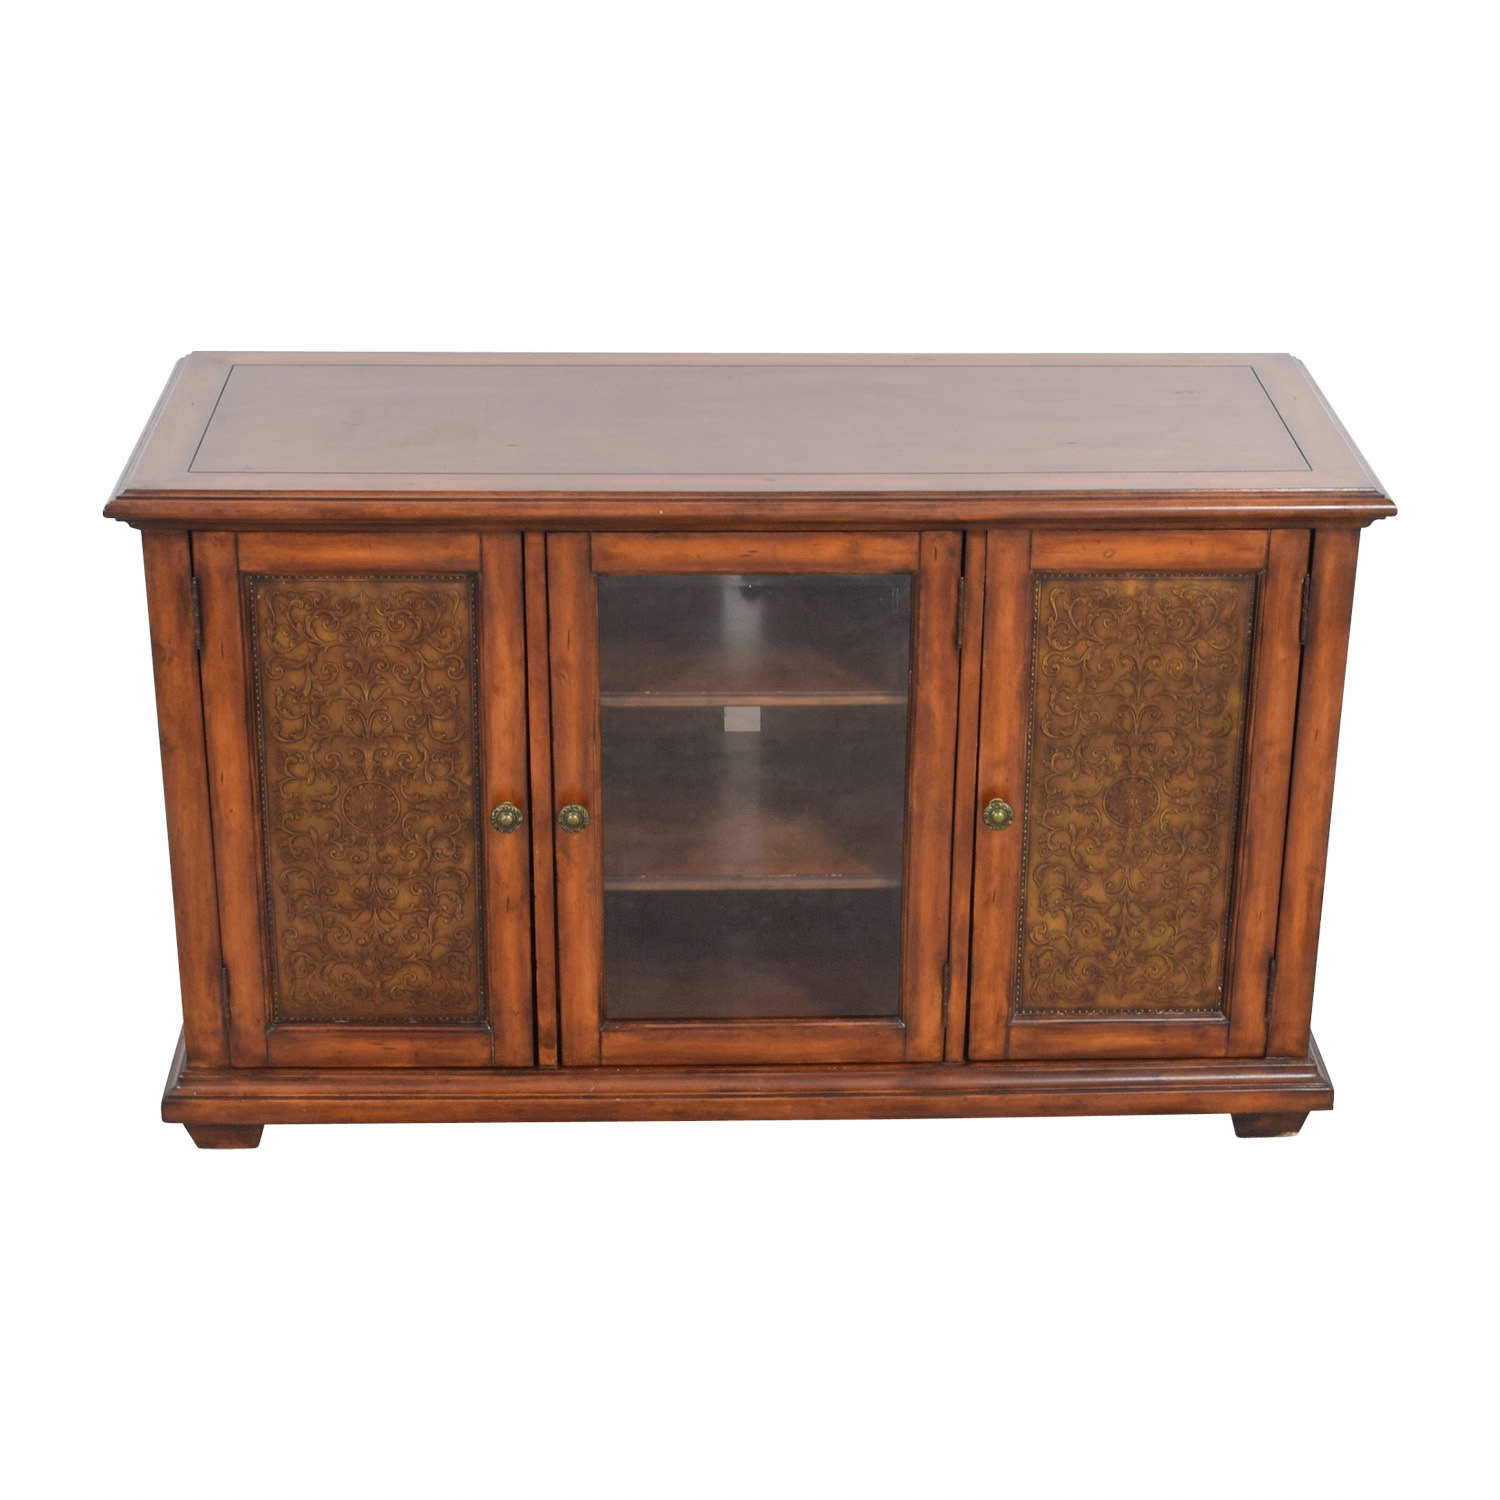 Pier 1 Imports Pier 1 Imports Entertainment Credenza